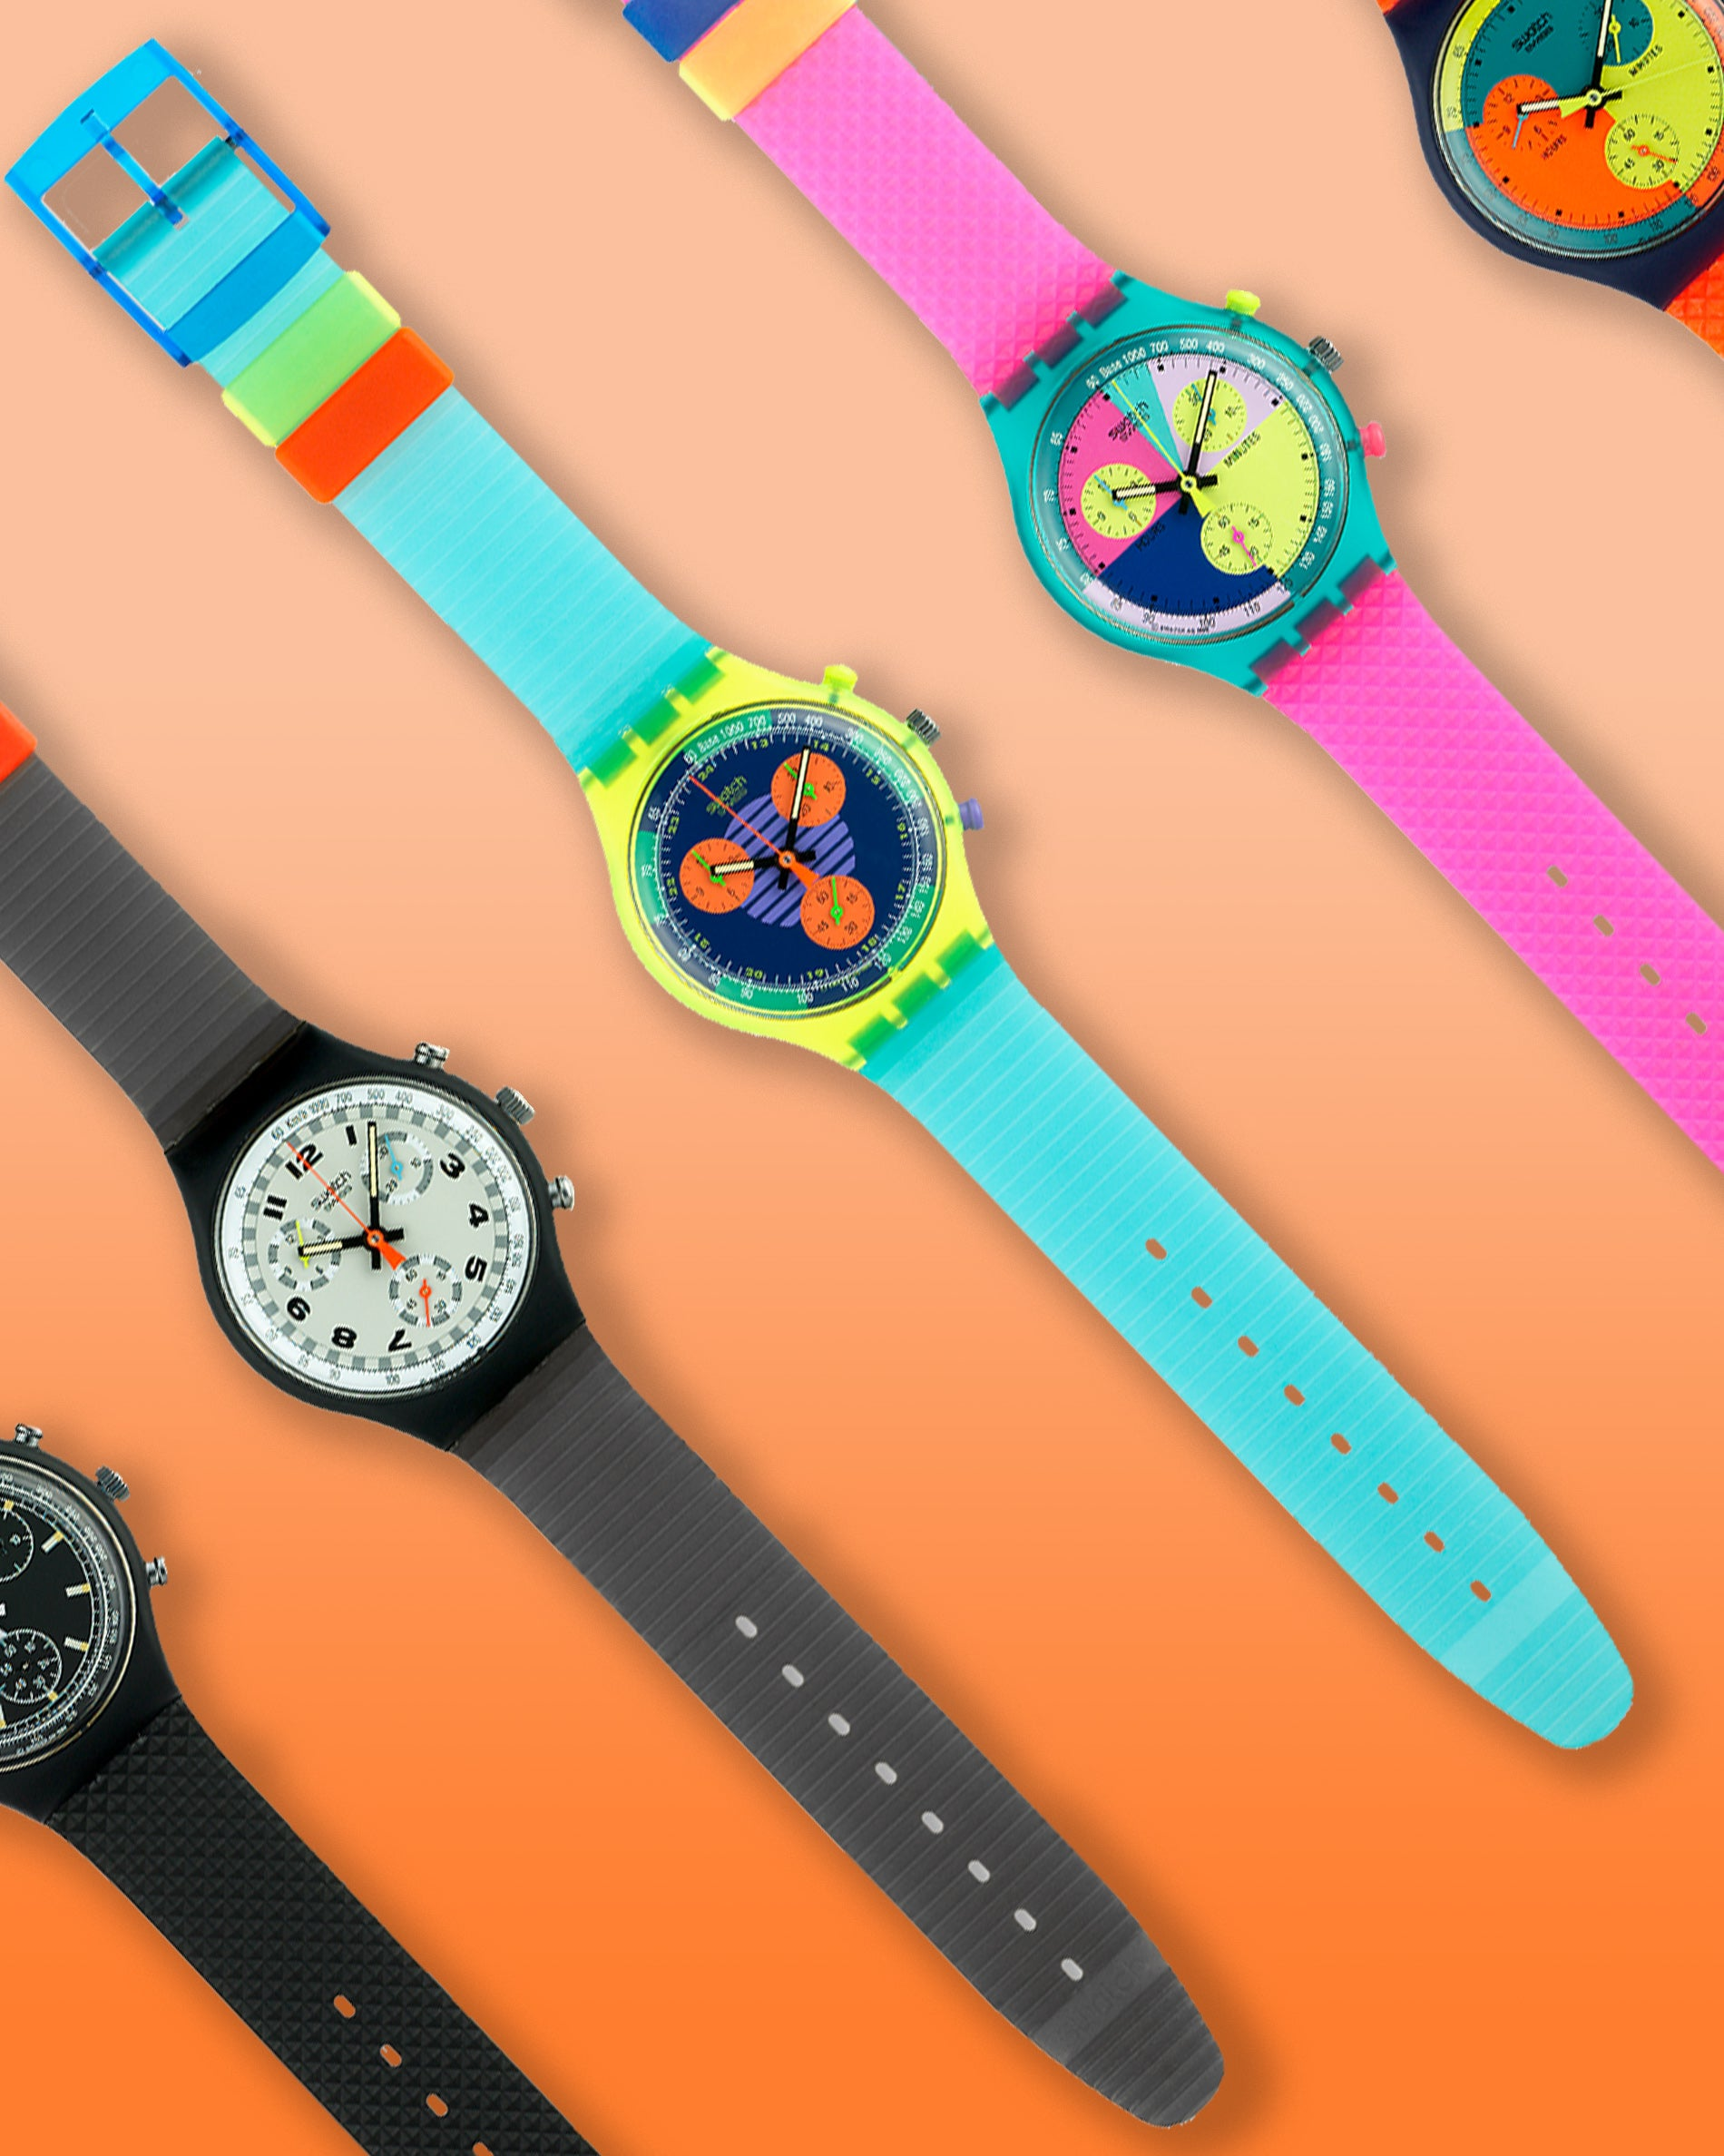 The original Swatch chronographs released in 1990 on an orange background for A Collected Man London